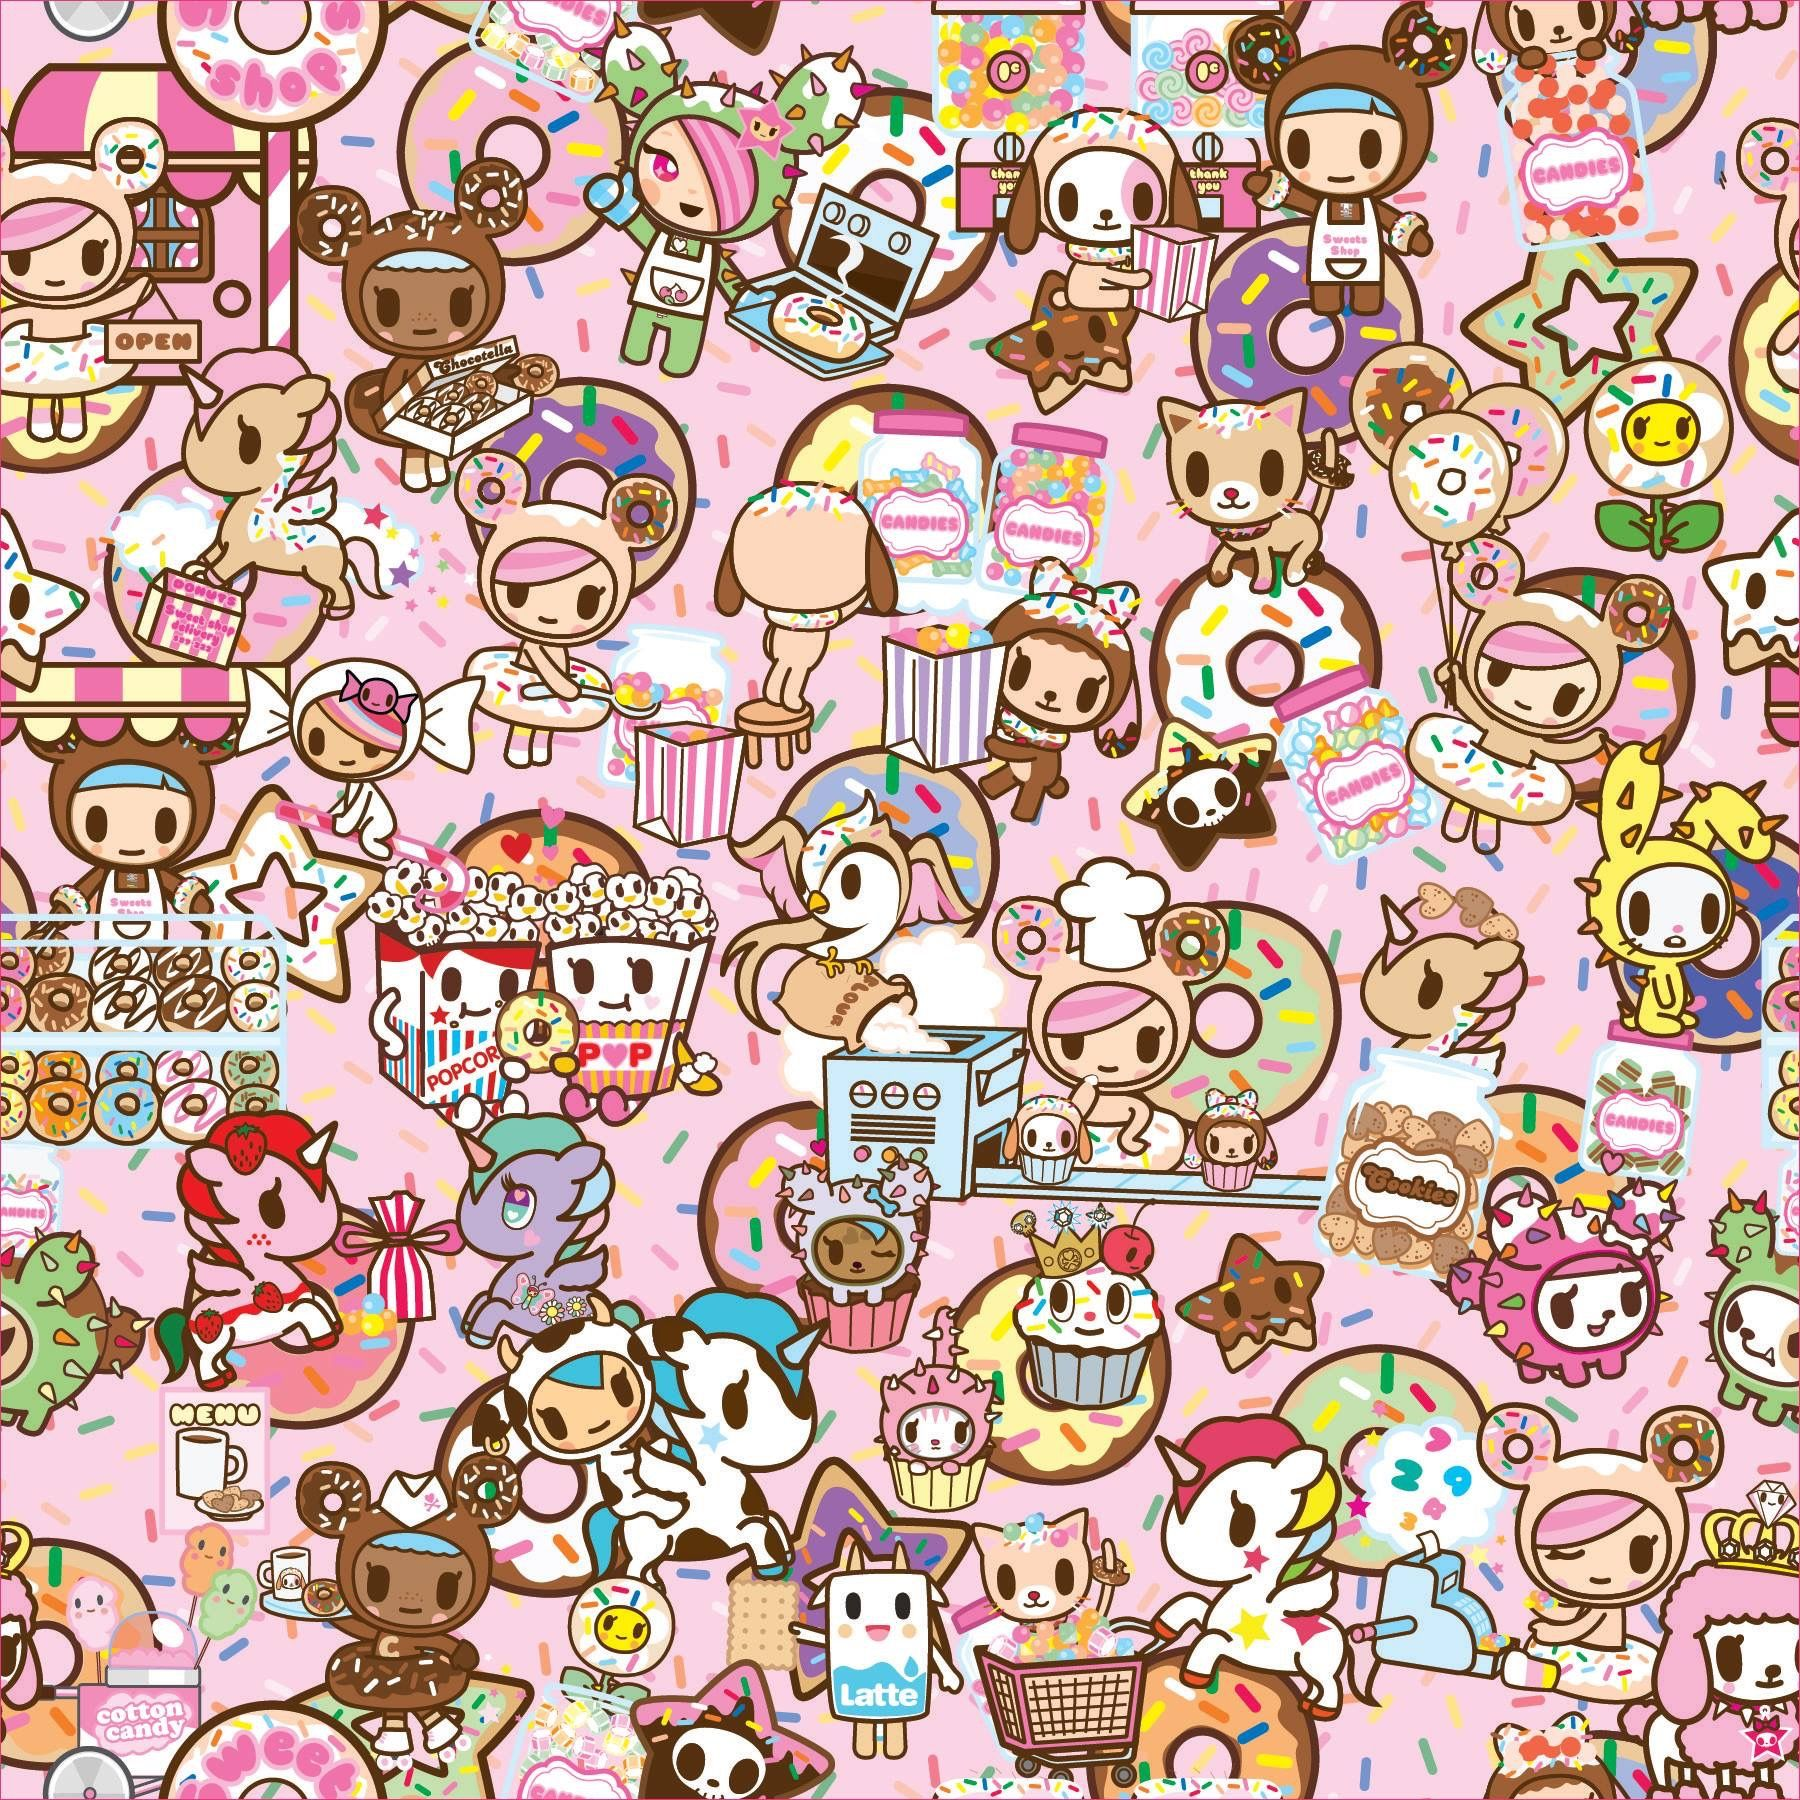 1800x1800 Tokidoki Wallpapers 13 - 1800 X 1800 | stmed.net